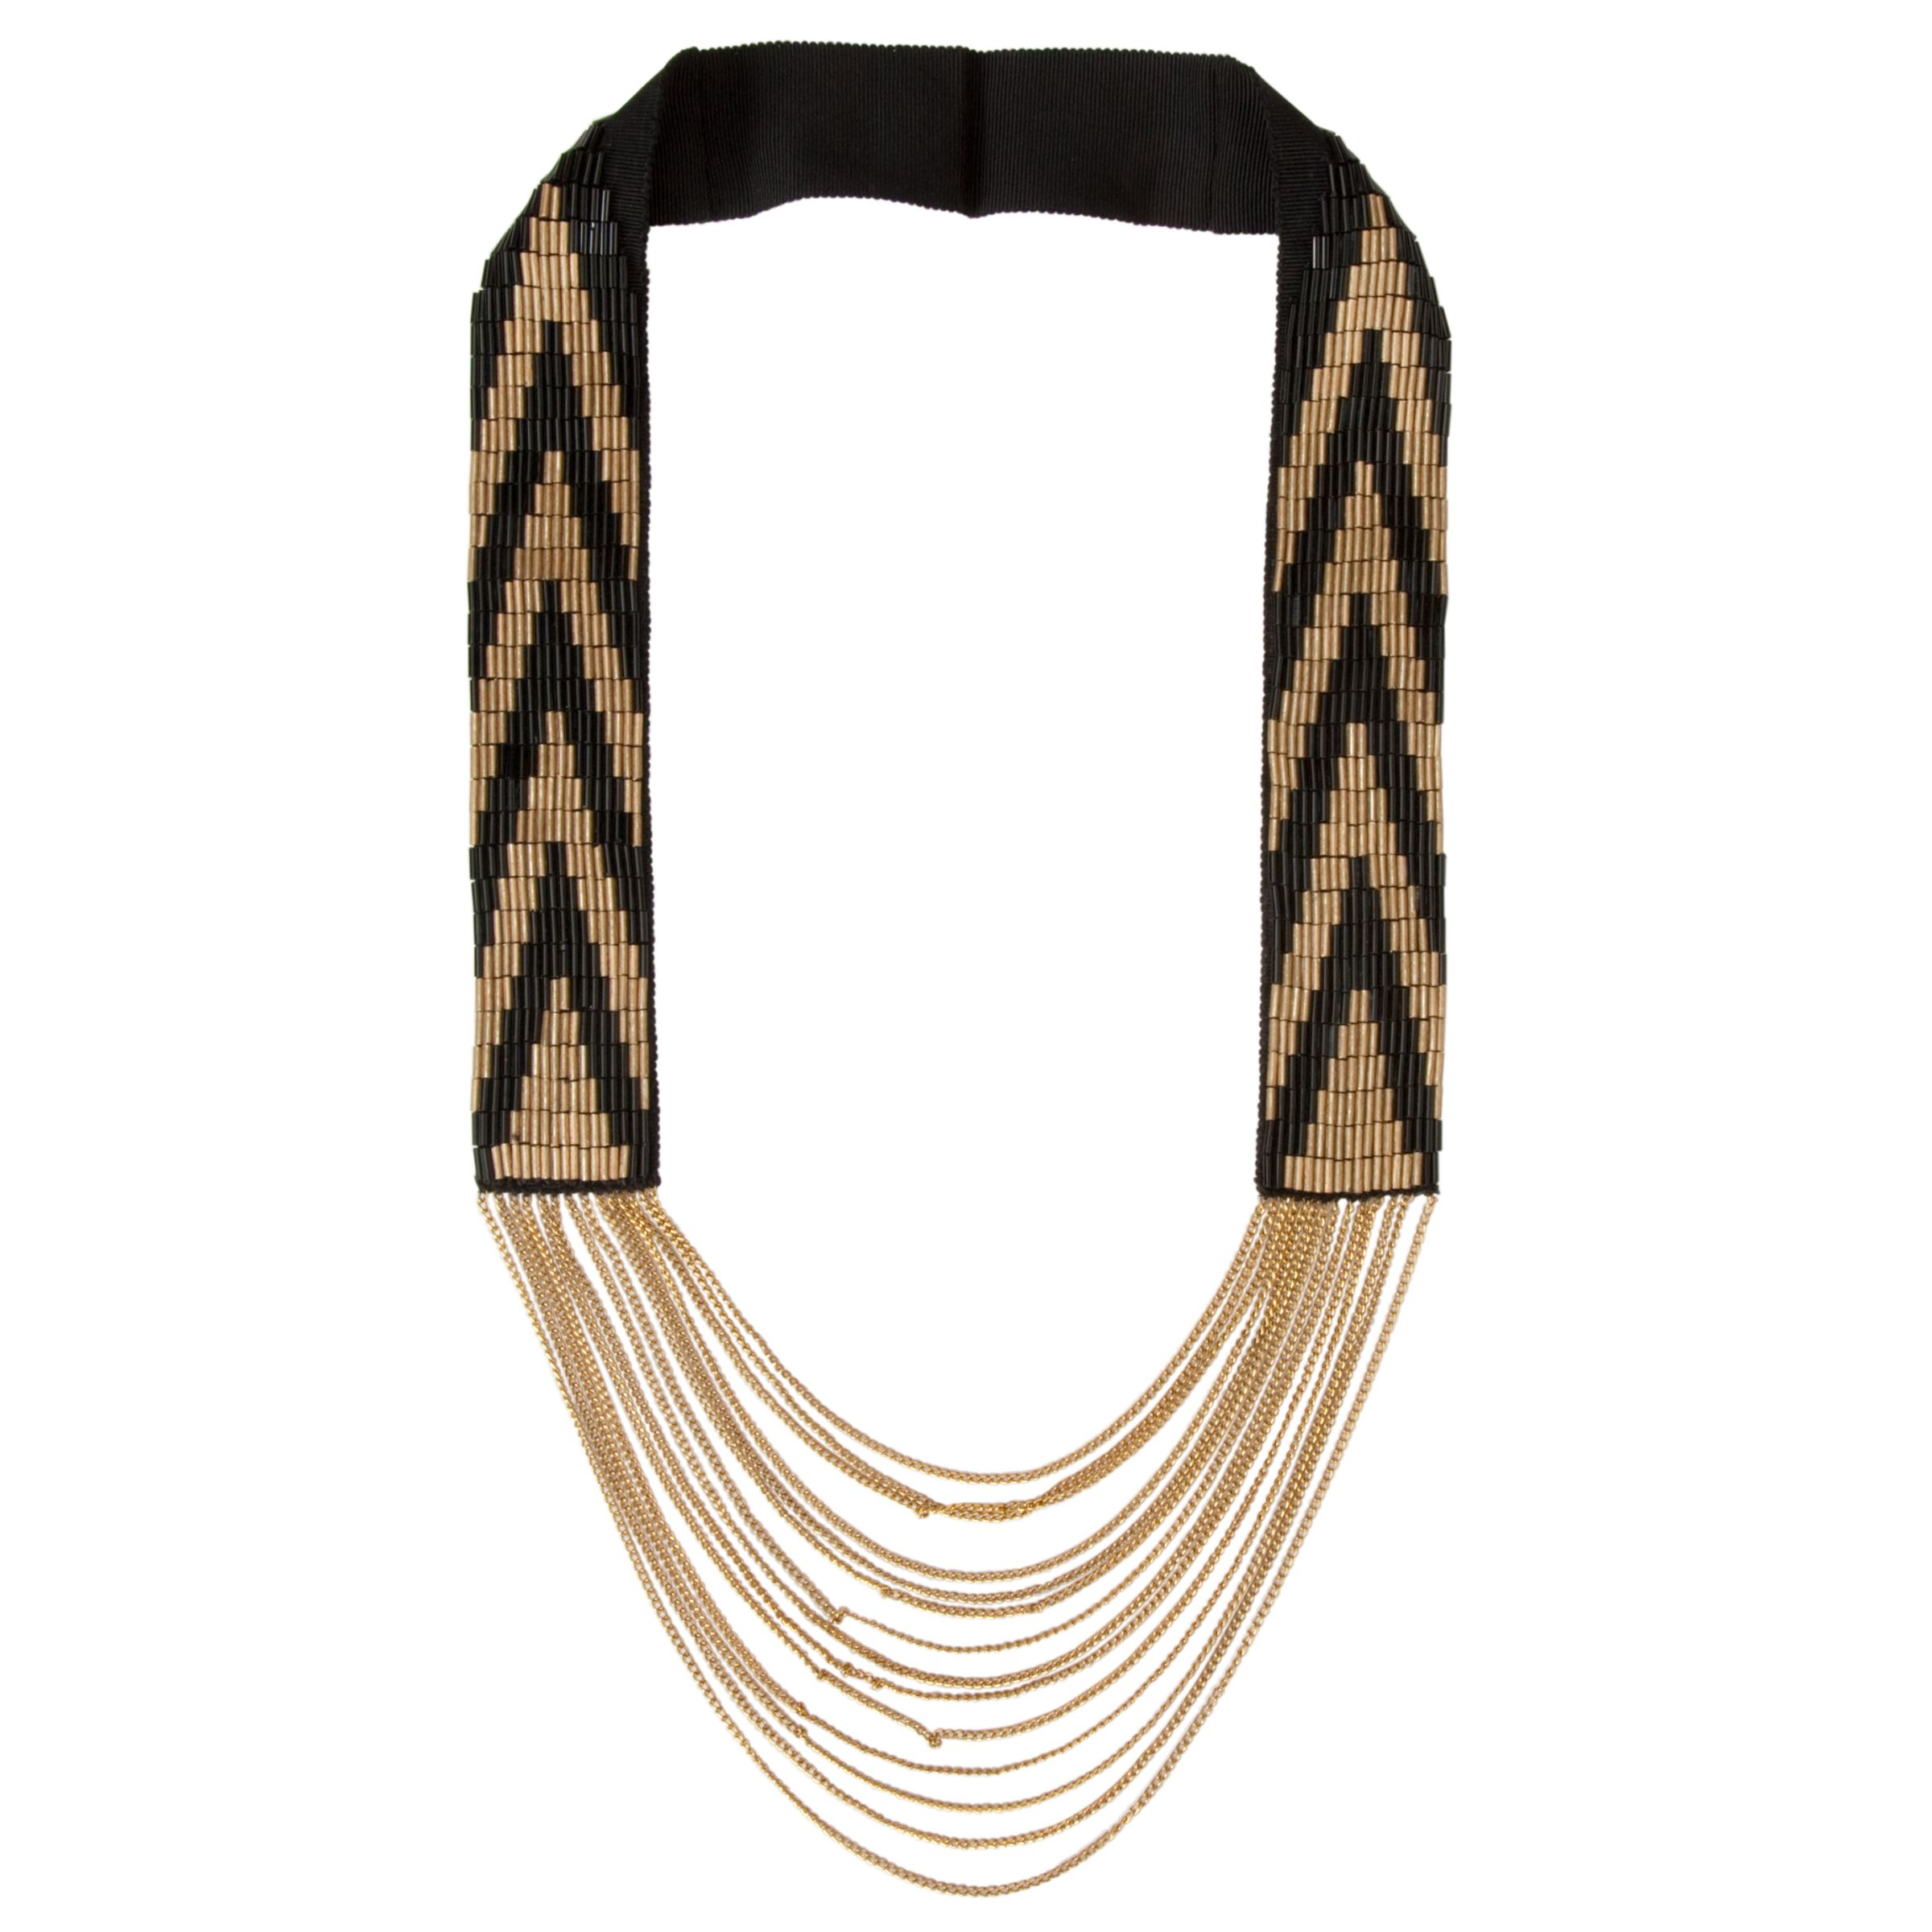 Fiona Paxton Cora Bead Necklace, Black/Gold